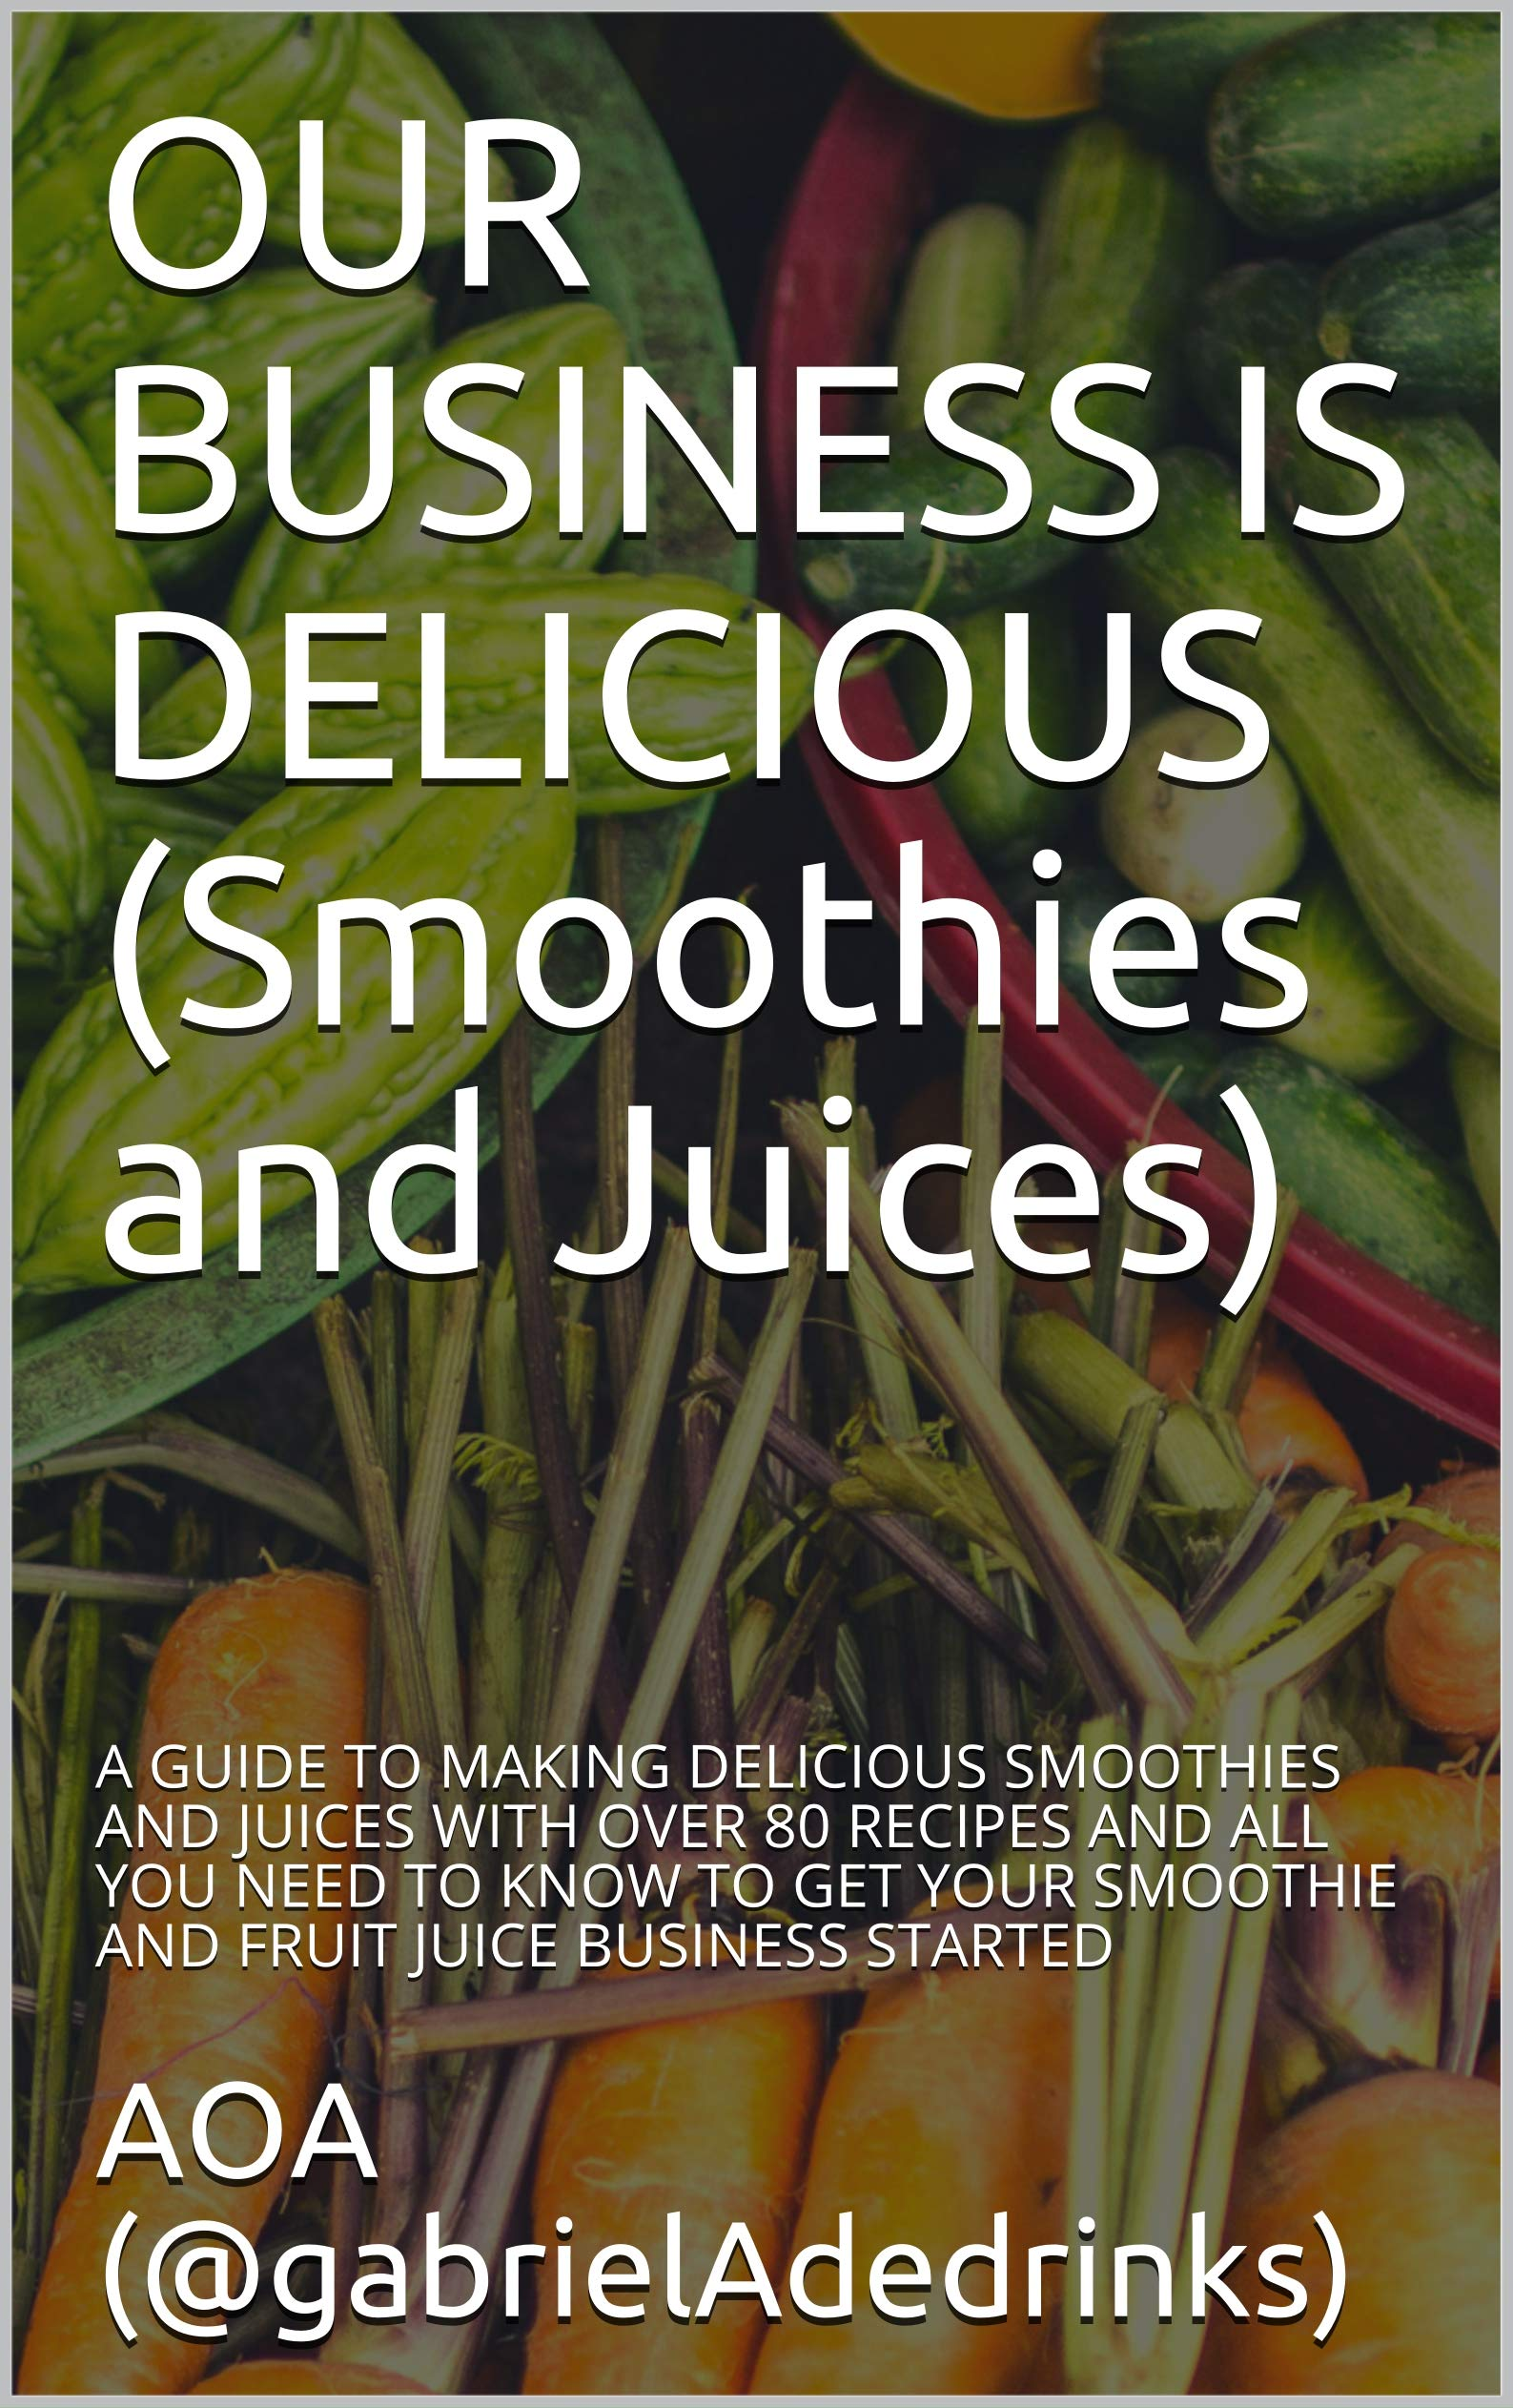 OUR BUSINESS IS DELICIOUS (Smoothies and Juices): A GUIDE TO MAKING DELICIOUS SMOOTHIES AND JUICES WITH OVER 80 RECIPES AND ALL YOU NEED TO KNOW TO GET YOUR SMOOTHIE AND FRUIT JUICE BUSINESS STARTED